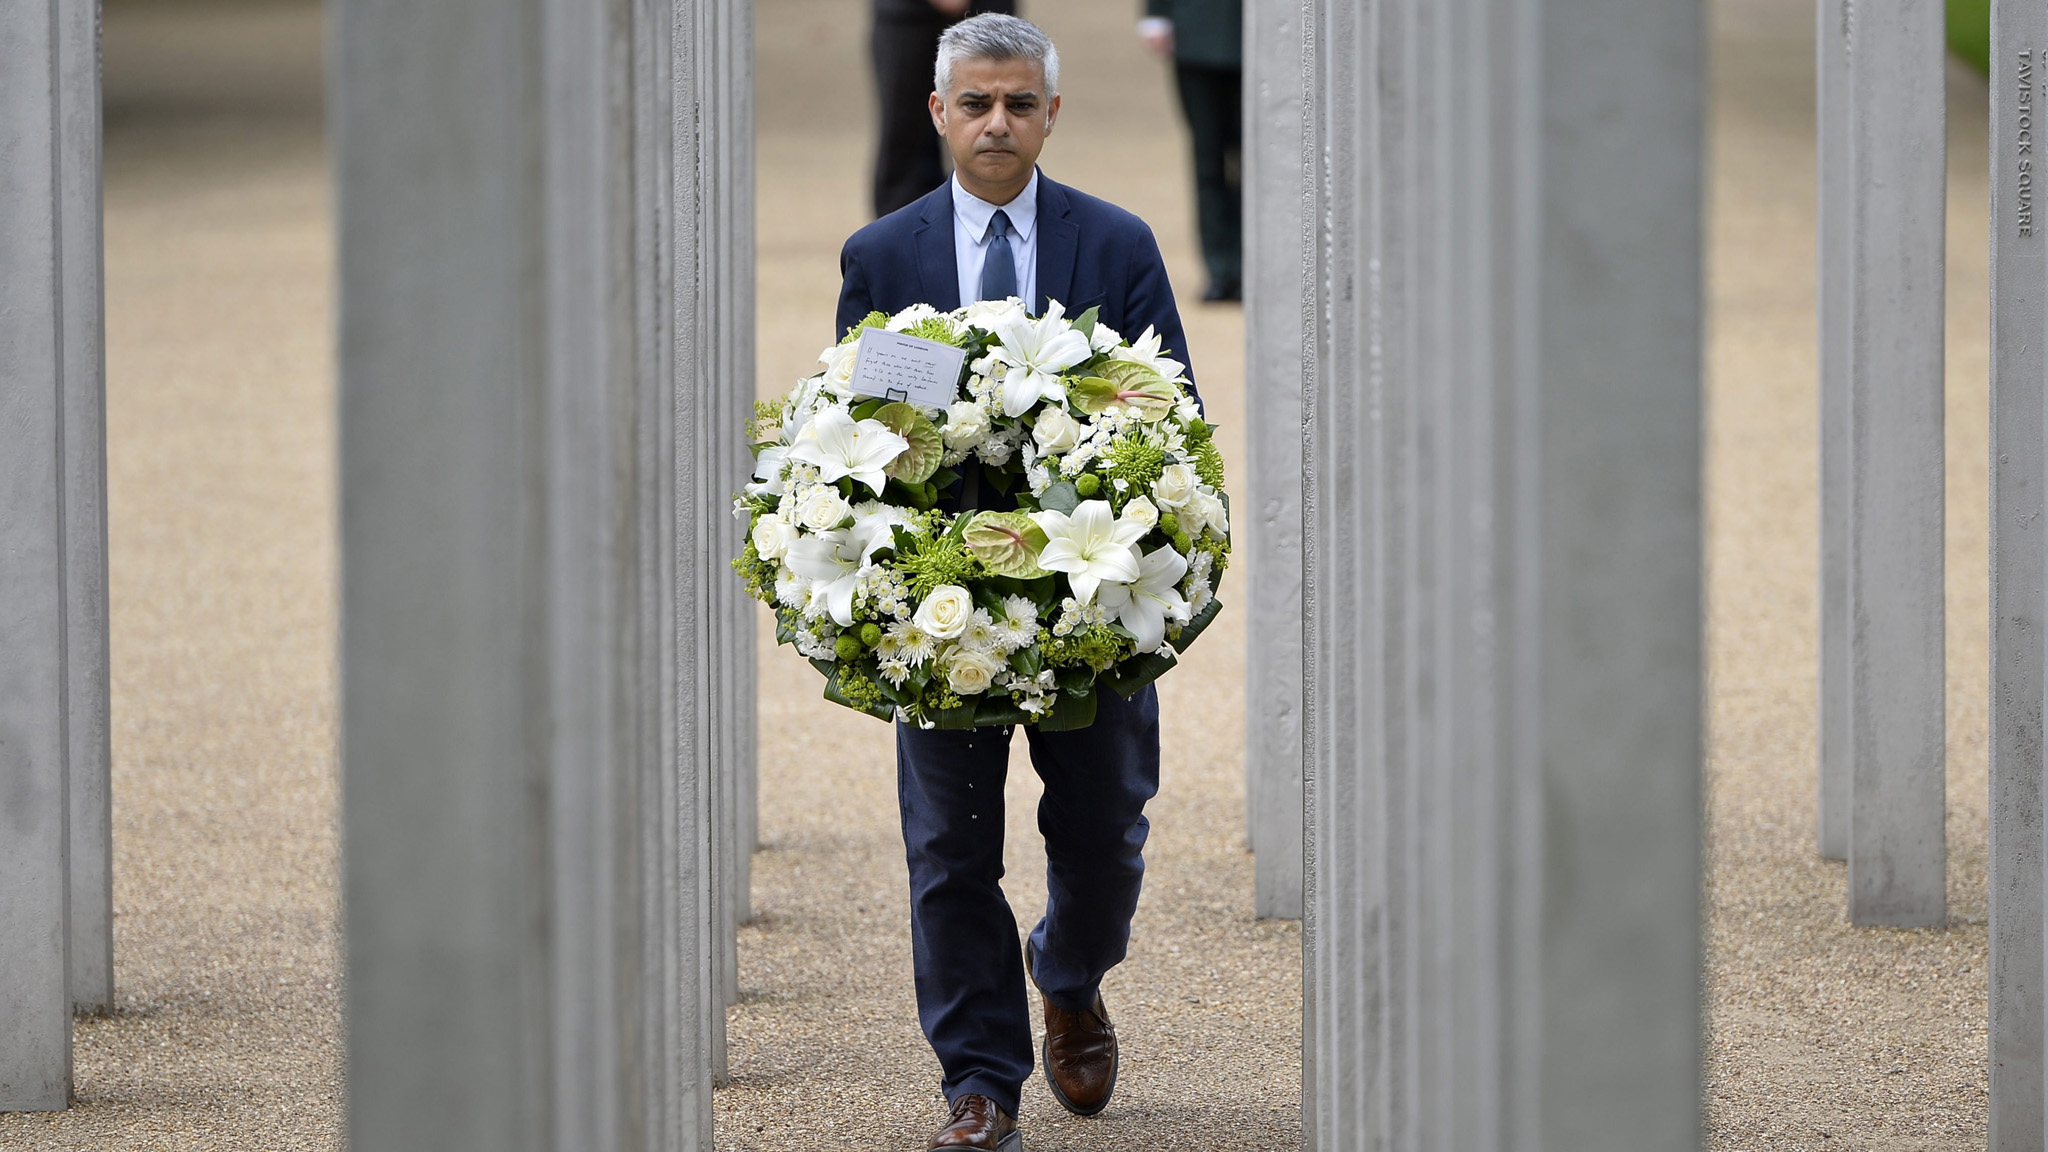 Mayor of London Sadiq Khan lays a wreath at the London bombings 7/7 Memorial at Hyde Park in London, Britain